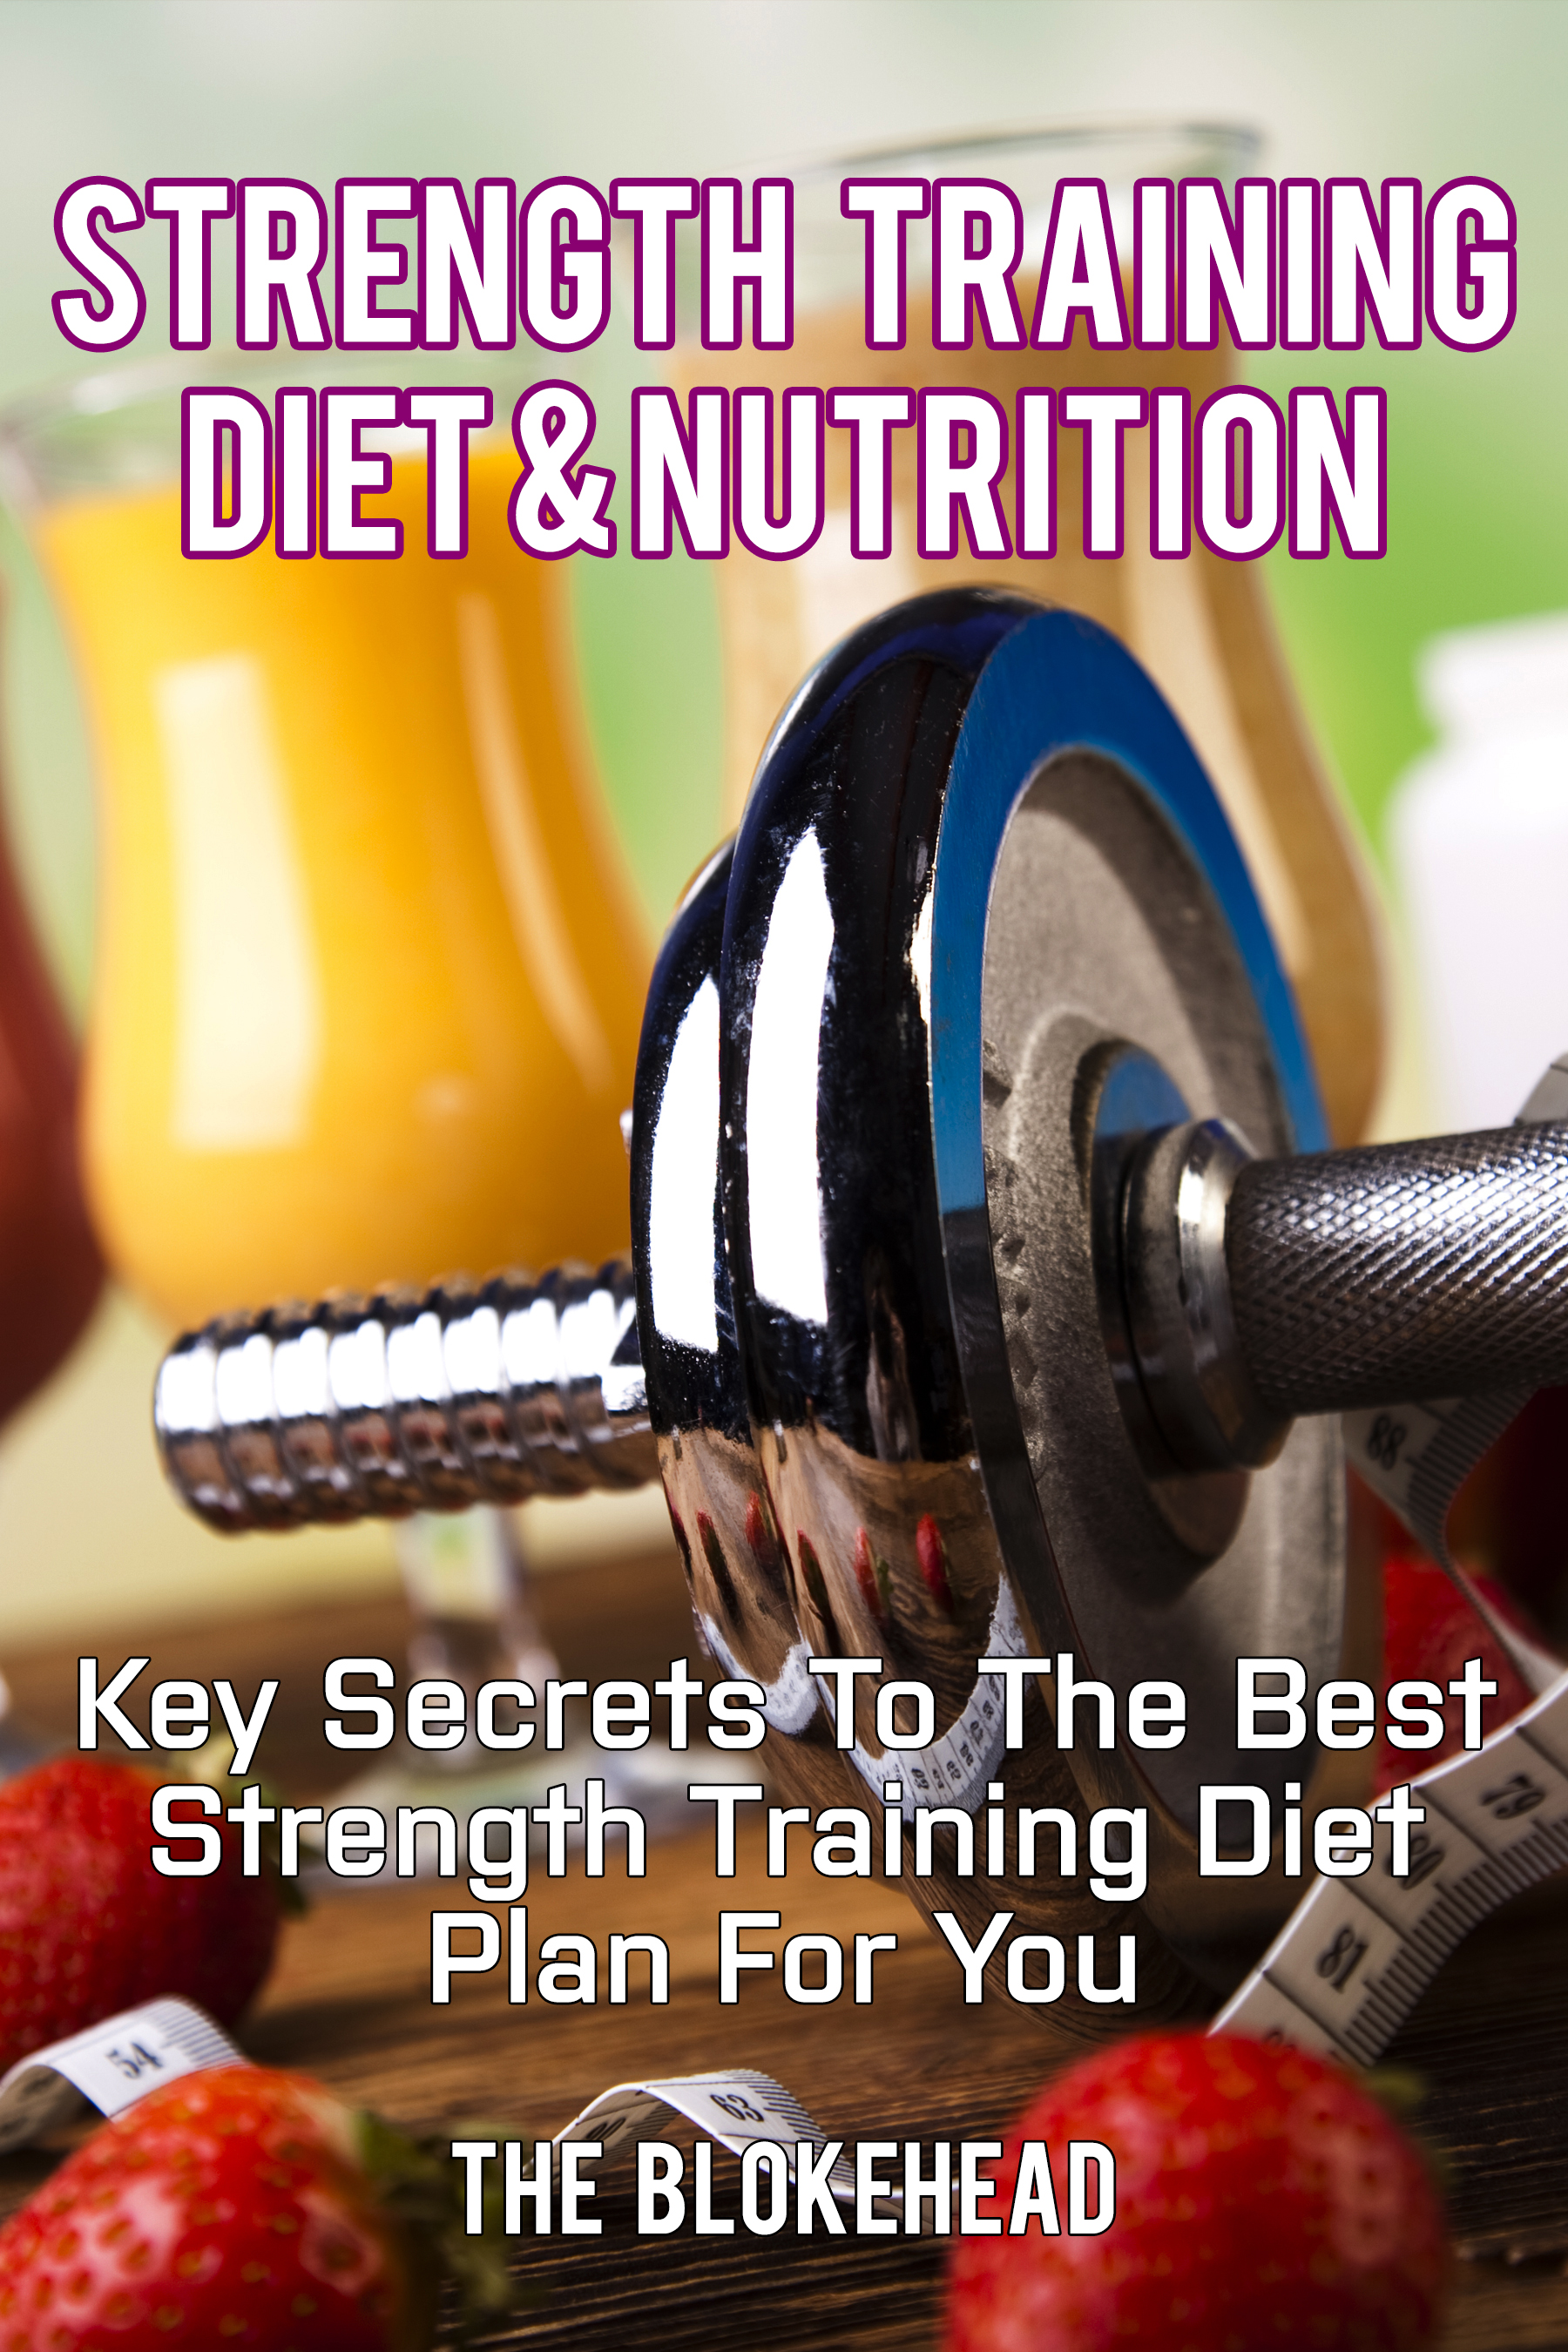 Strength Training Diet & Nutrition : Key Secrets To The Best Strength Training Diet Plan For You  (sst-cdlii)